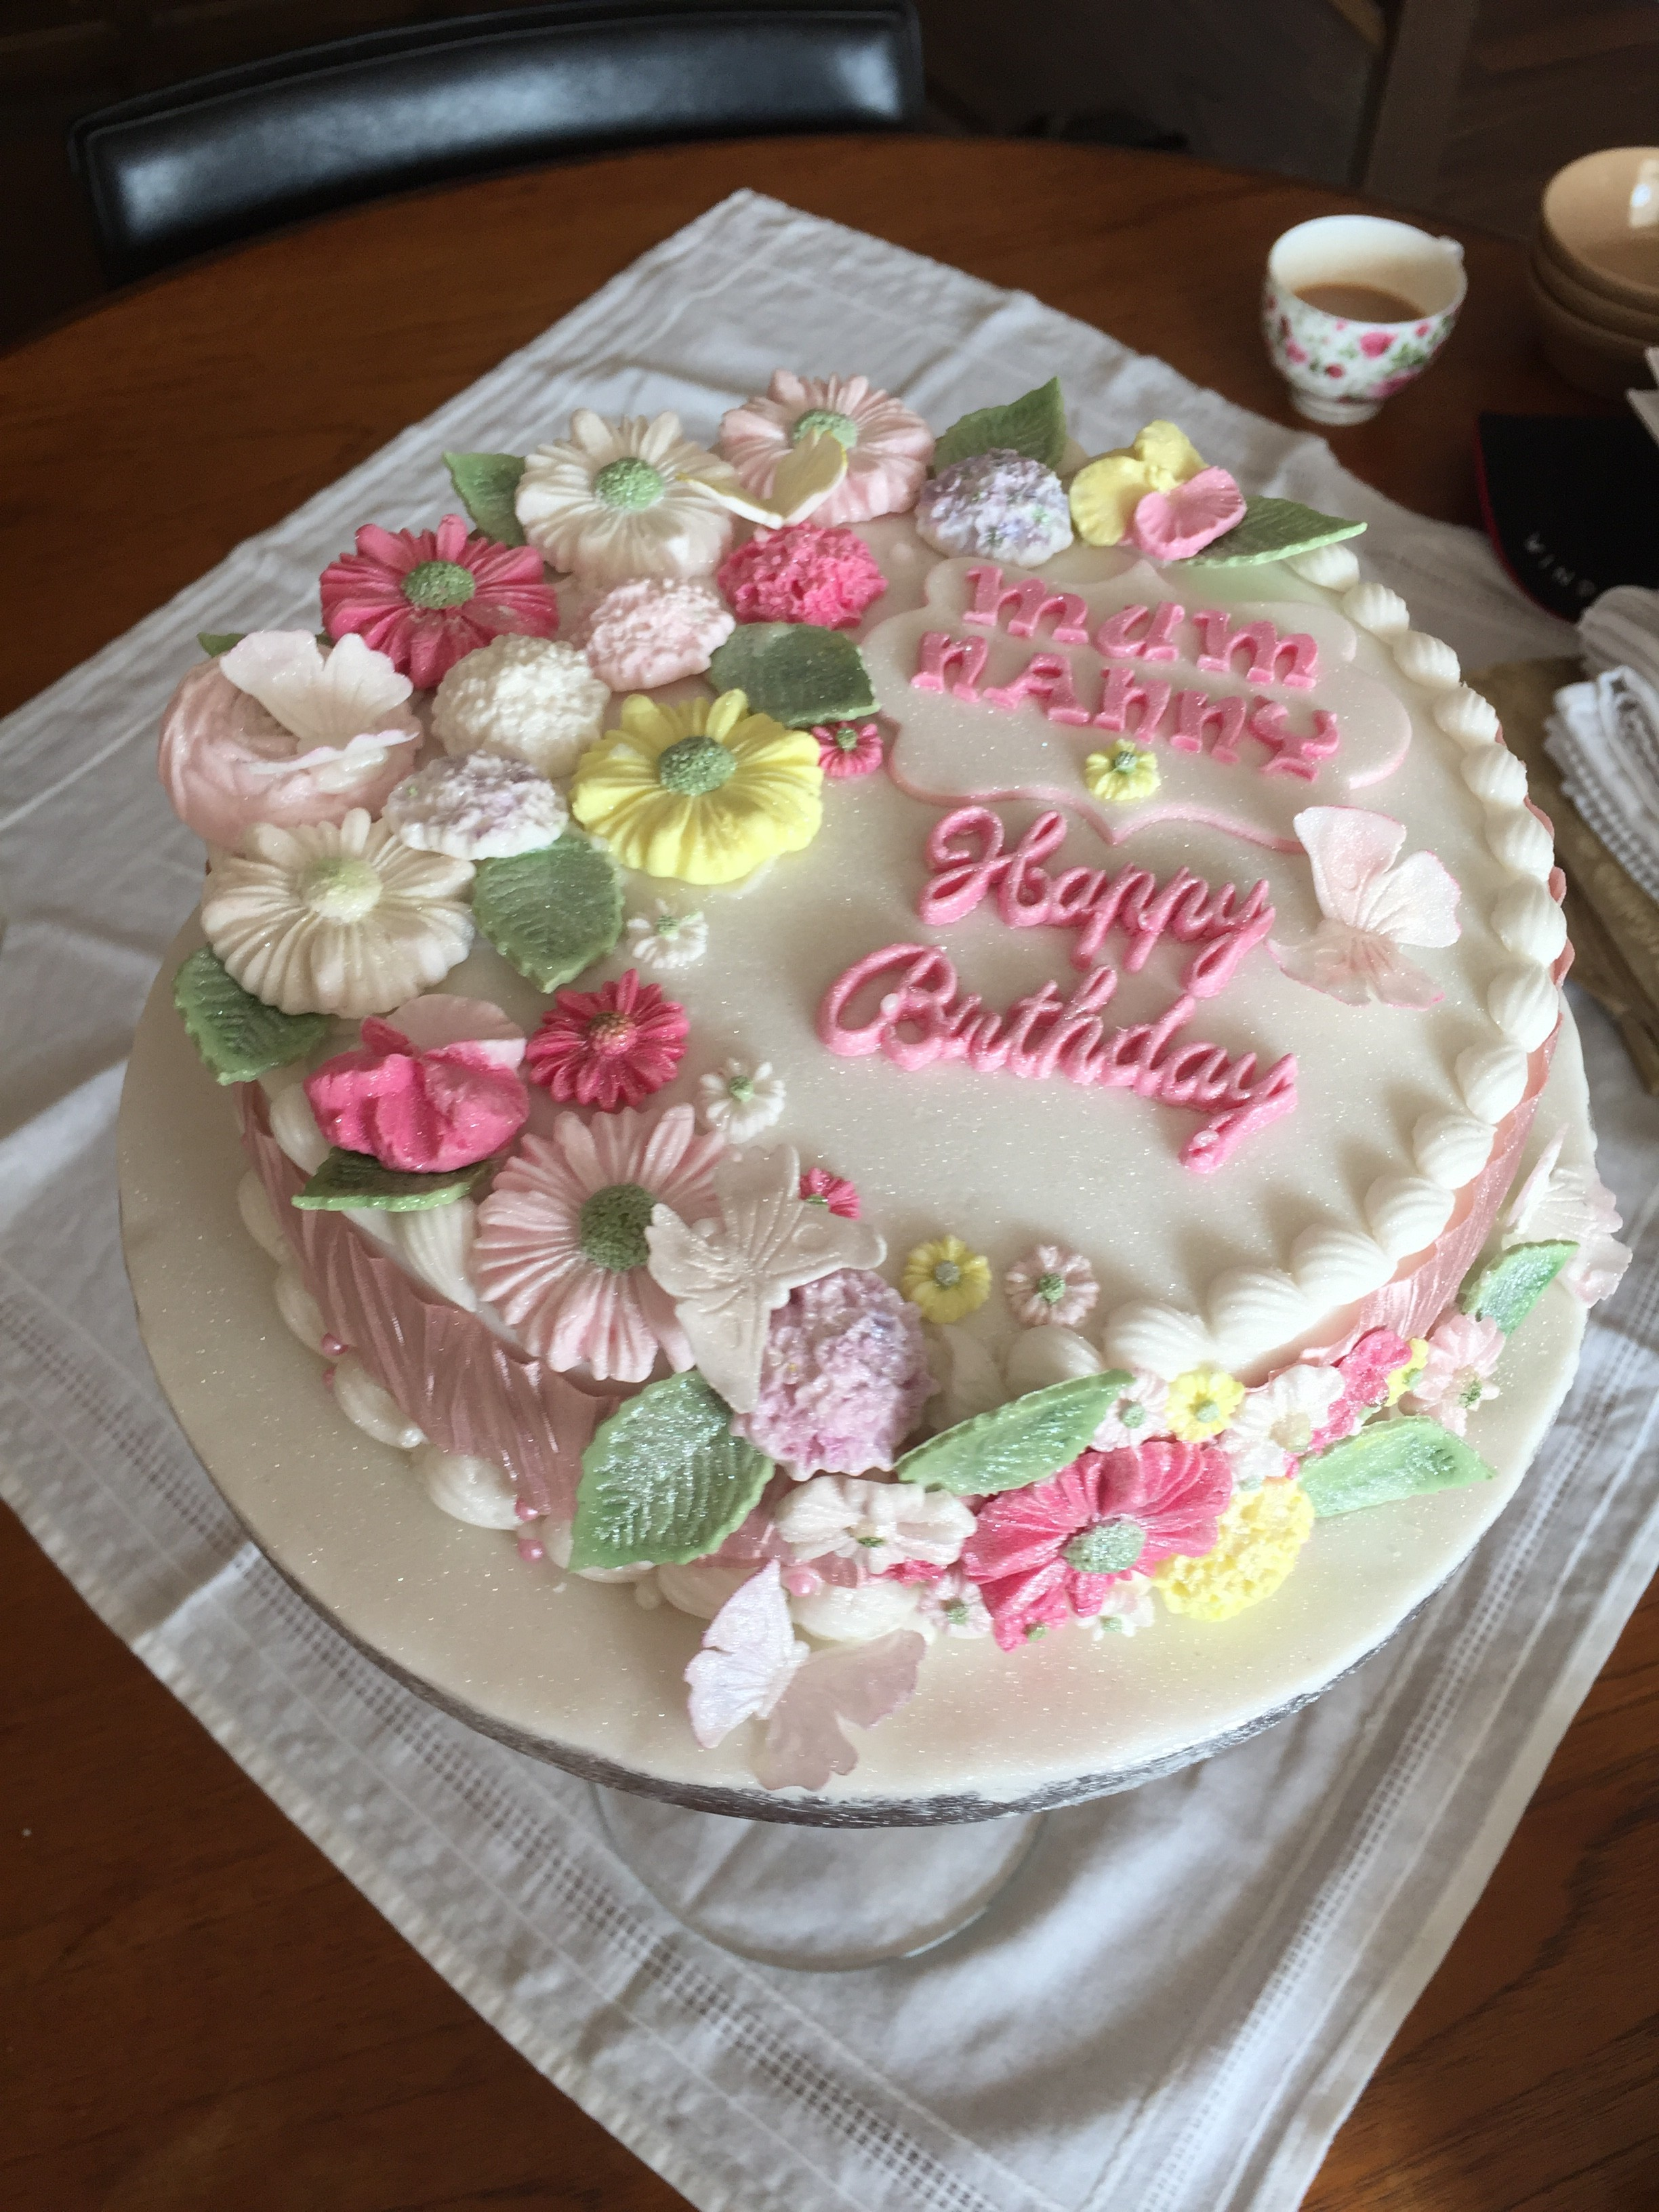 Pleasing Looking To Order Cake Online In Sittingbourne Mums Bake Cakes Funny Birthday Cards Online Hendilapandamsfinfo